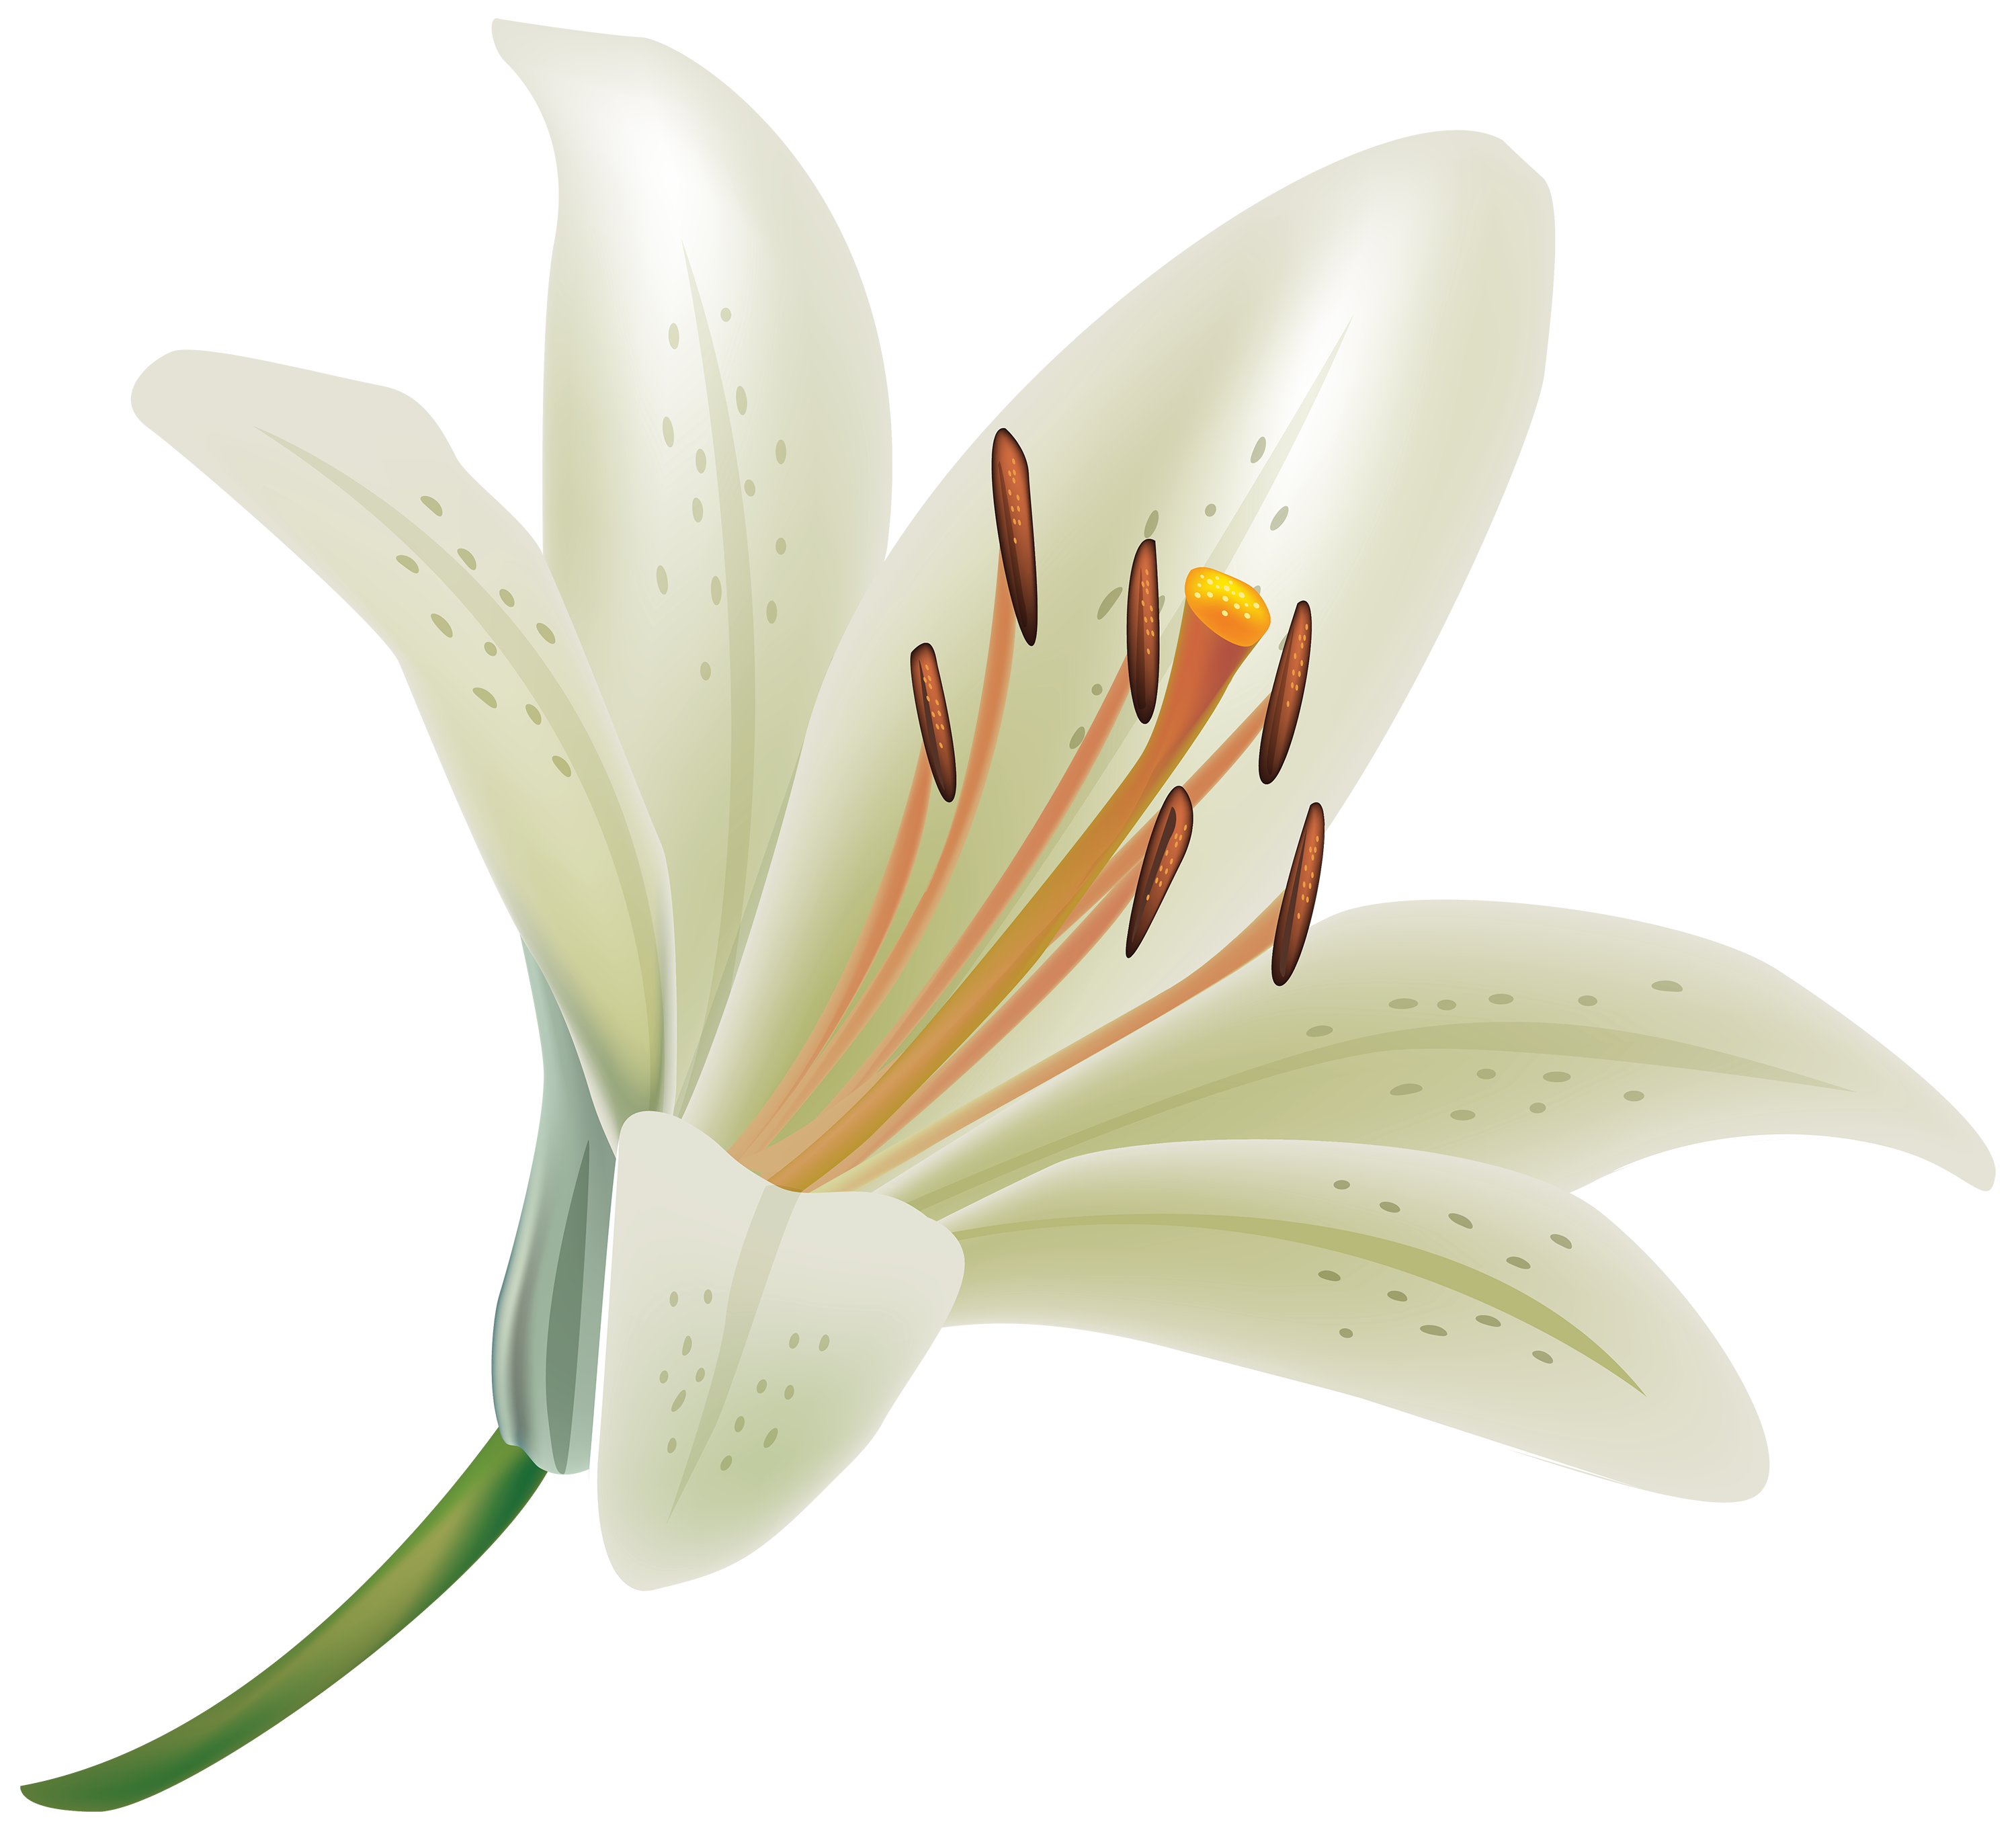 Pin by lily webster on tat ideas pinterest white lily flower and white lily flower png clipart in category flowers png clipart transparent png pictures and vector rasterized clip art images izmirmasajfo Choice Image